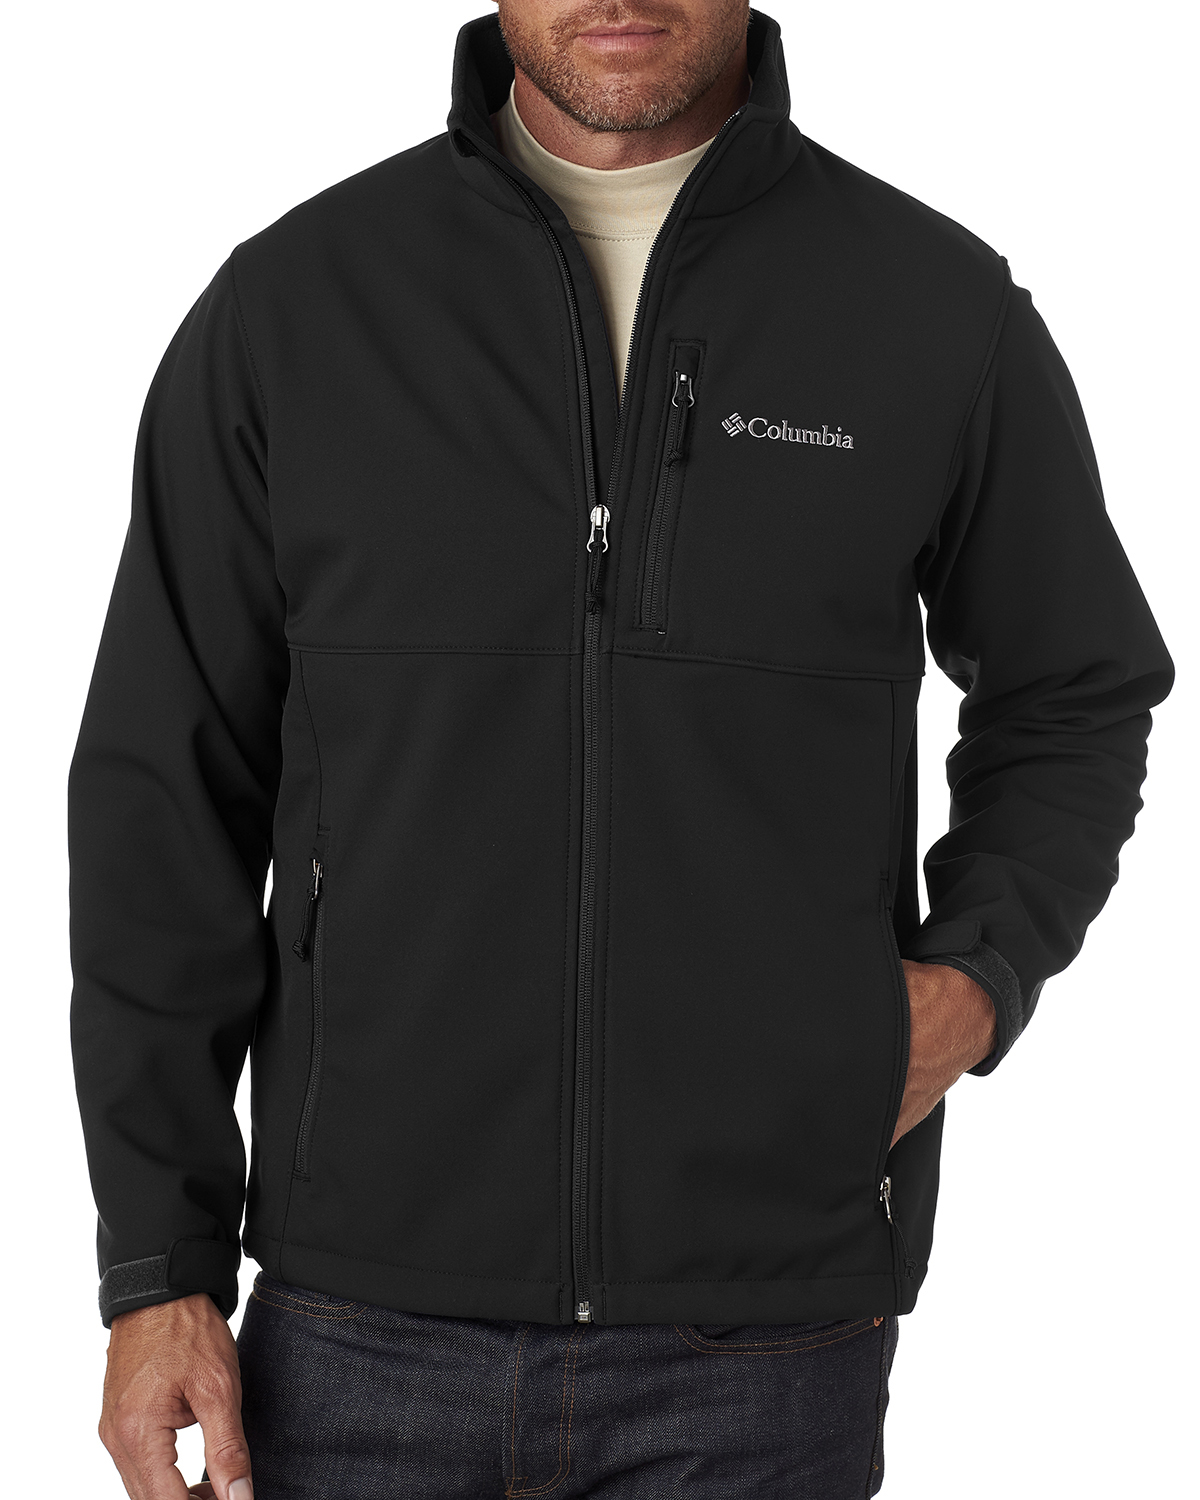 Columbia C6044 - Men's Ascender™ Soft Shell